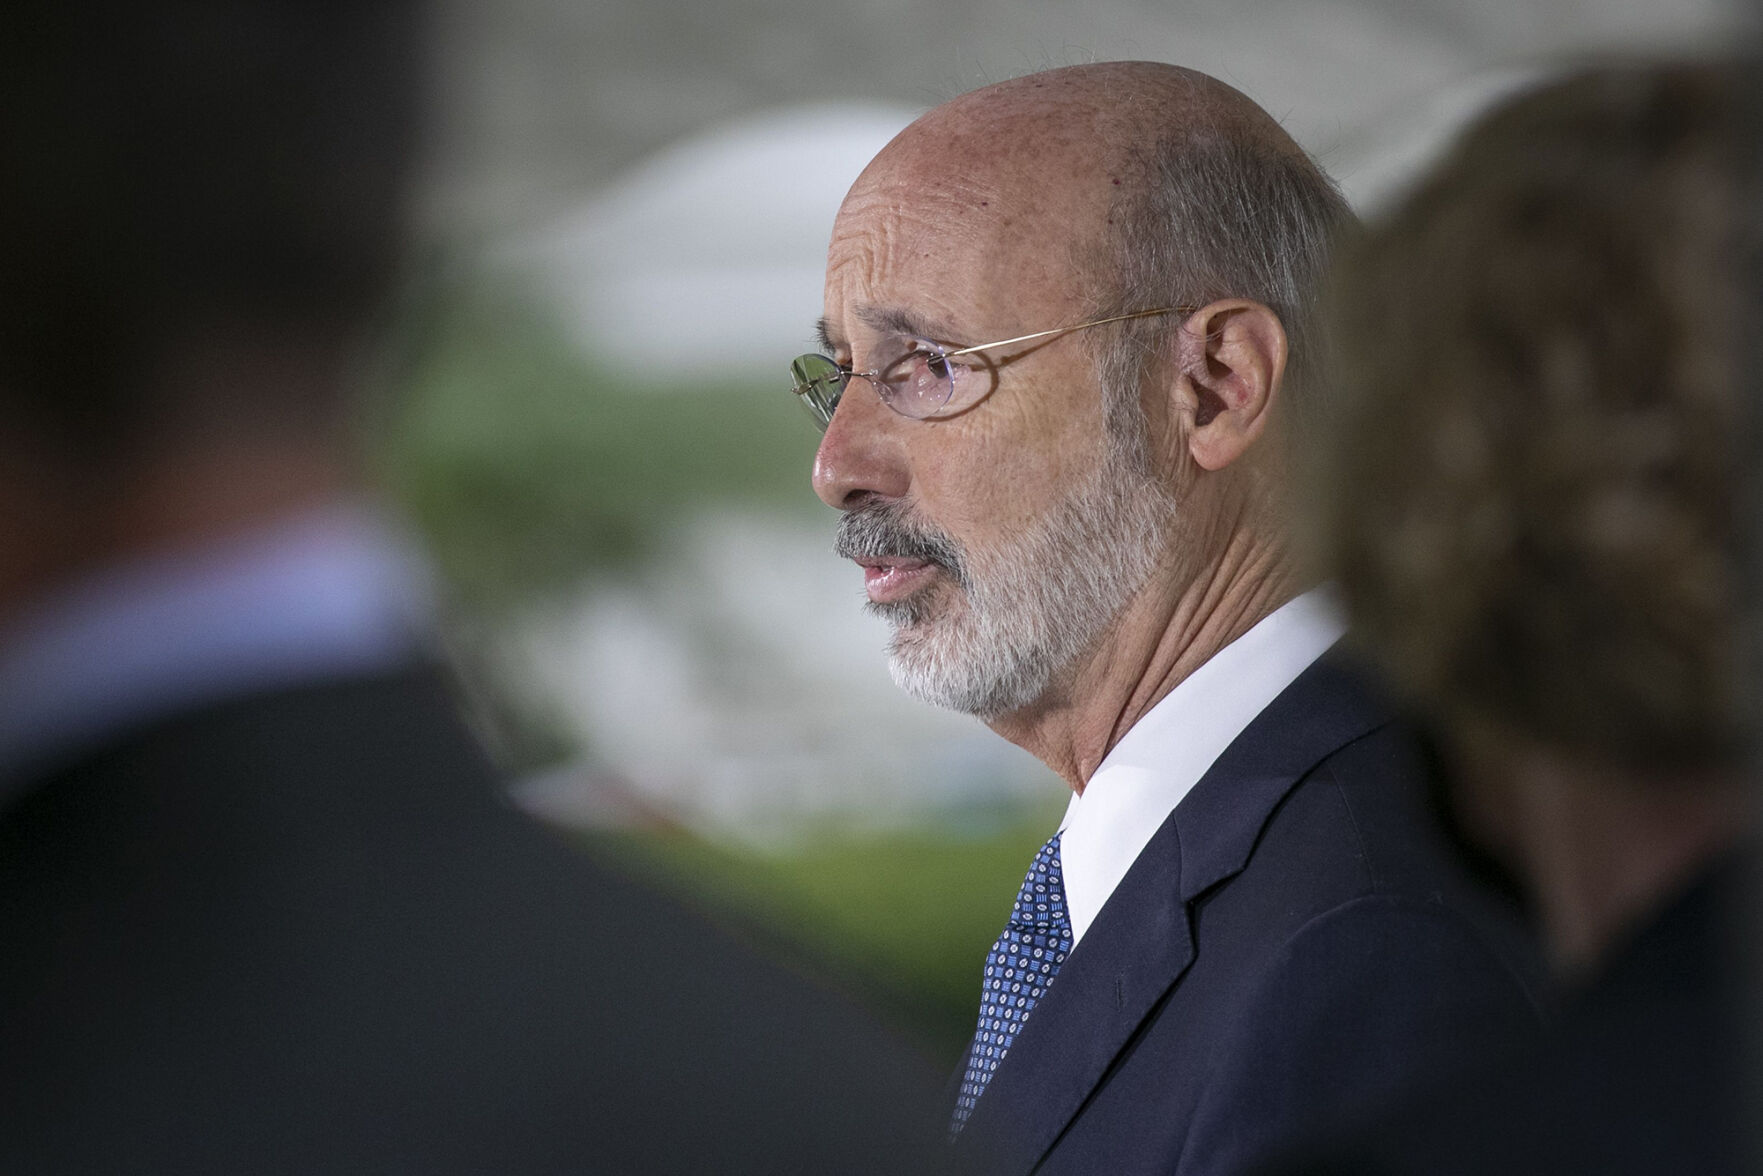 Wolf touts financial benefits of climate change partnerships